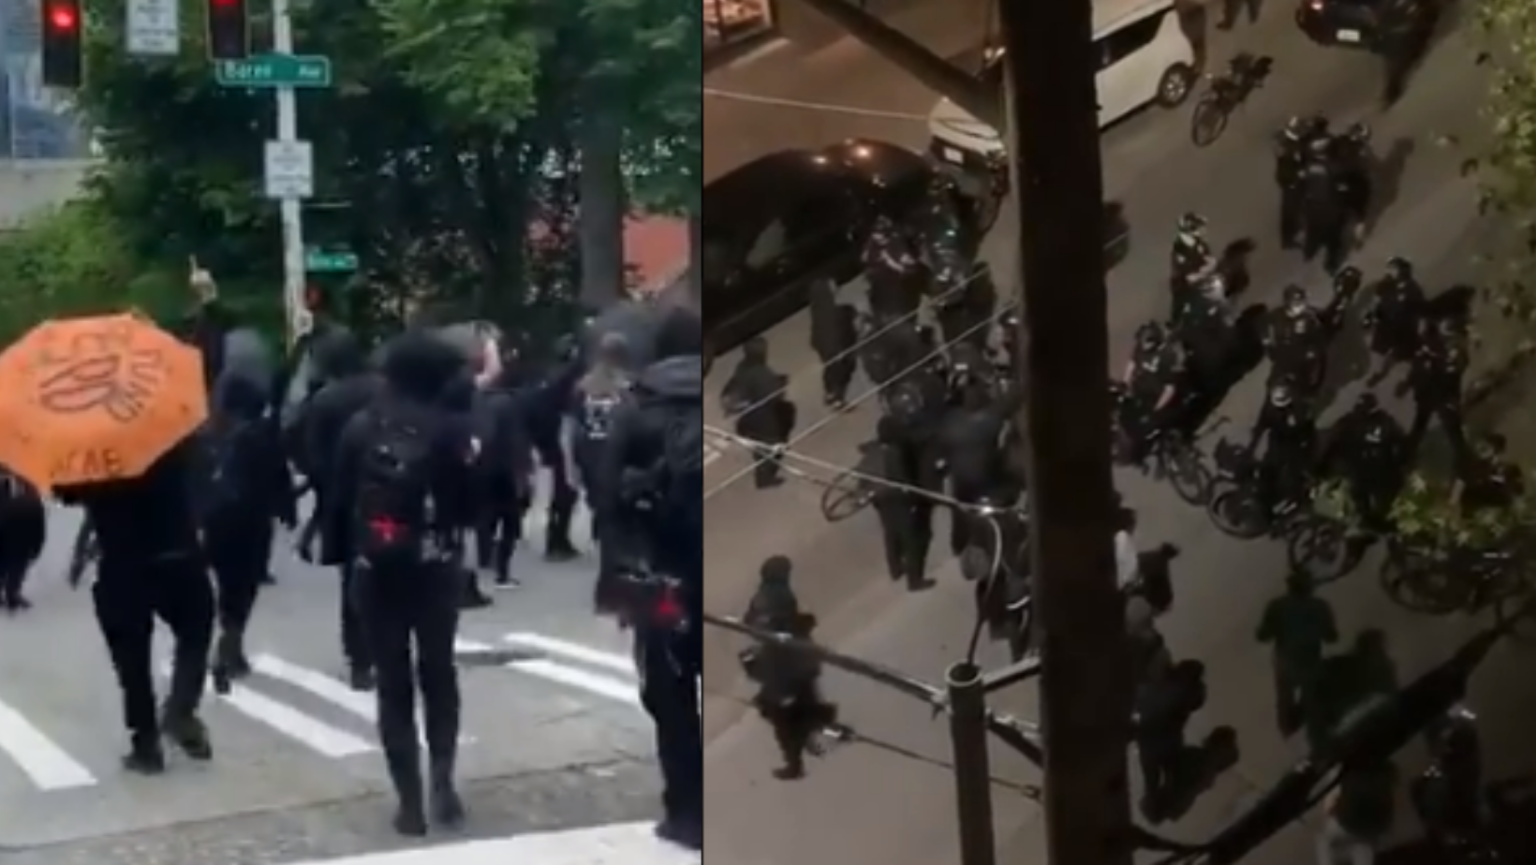 Seattle May Day protests turn violent as Antifa members assault cops and a small child